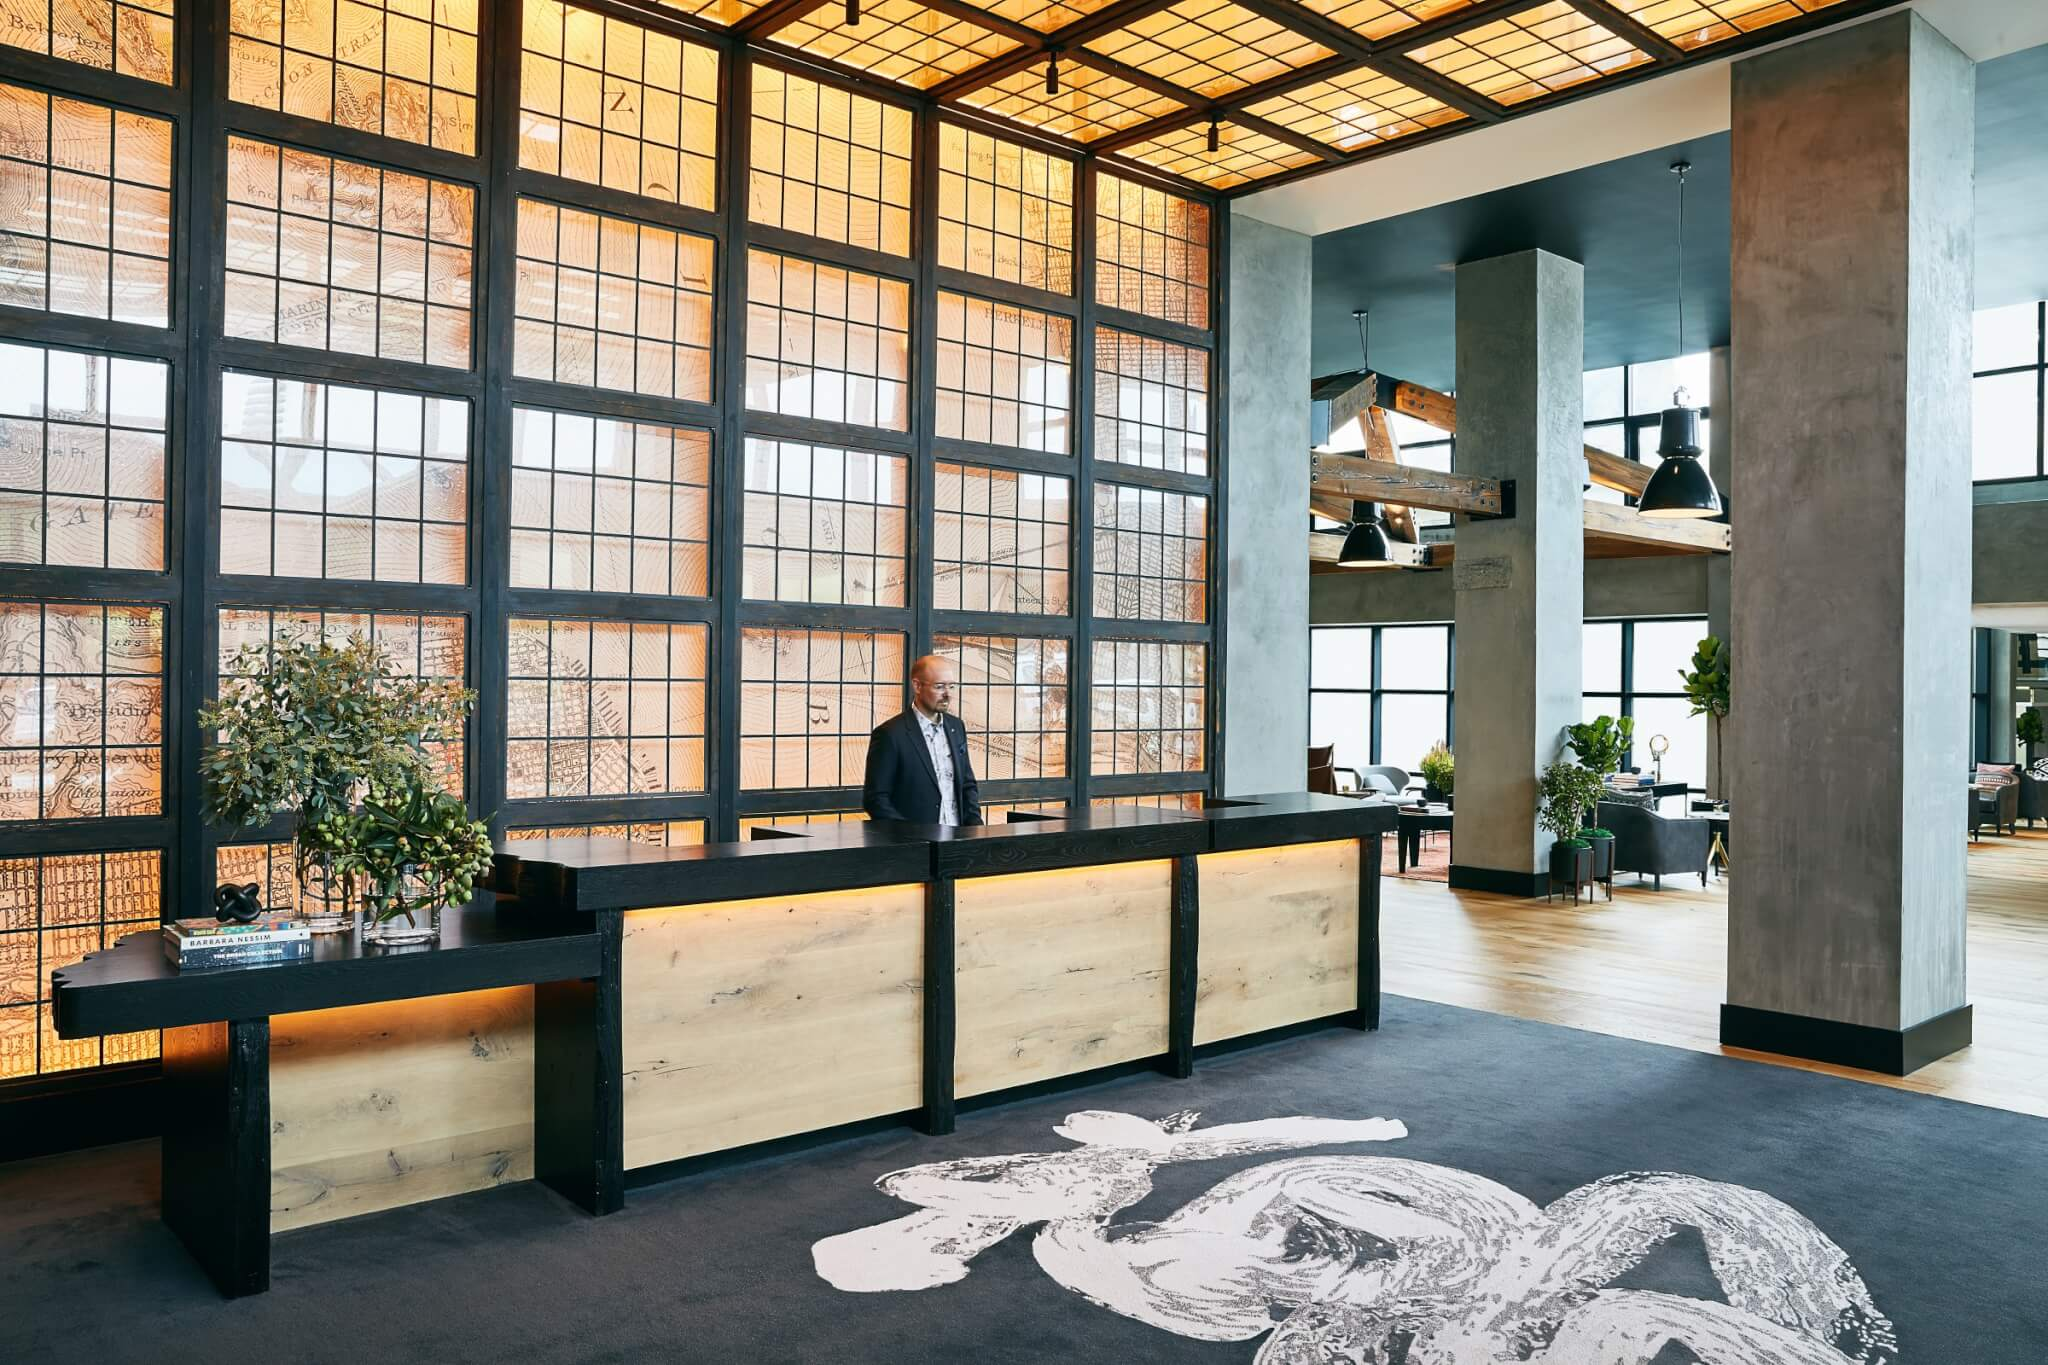 Hotel Kabuki, hotel kabuki review, joie de vivre hotels, joie de vivre hotels in san francisco, hotel kabuki zen garden, hotel kabuki bar, hotel kabuki restaurant, Japantown, japan town, hotel kabuki, kabuki hotel, places to stay in SF, places to stay in san Francisco, hotels in sf, hotels in San Francisco, hotels in bay area, boutique hotels in sf, boutique hotels in san Francisco, new hotels in sf, new hotels in san Francisco, japantown in san Francisco, japanese hotel, big hotel rooms in sf, big hotel rooms in san franisco, city view of san Francisco, rooms with a view in SF, rooms with a view in san francisco